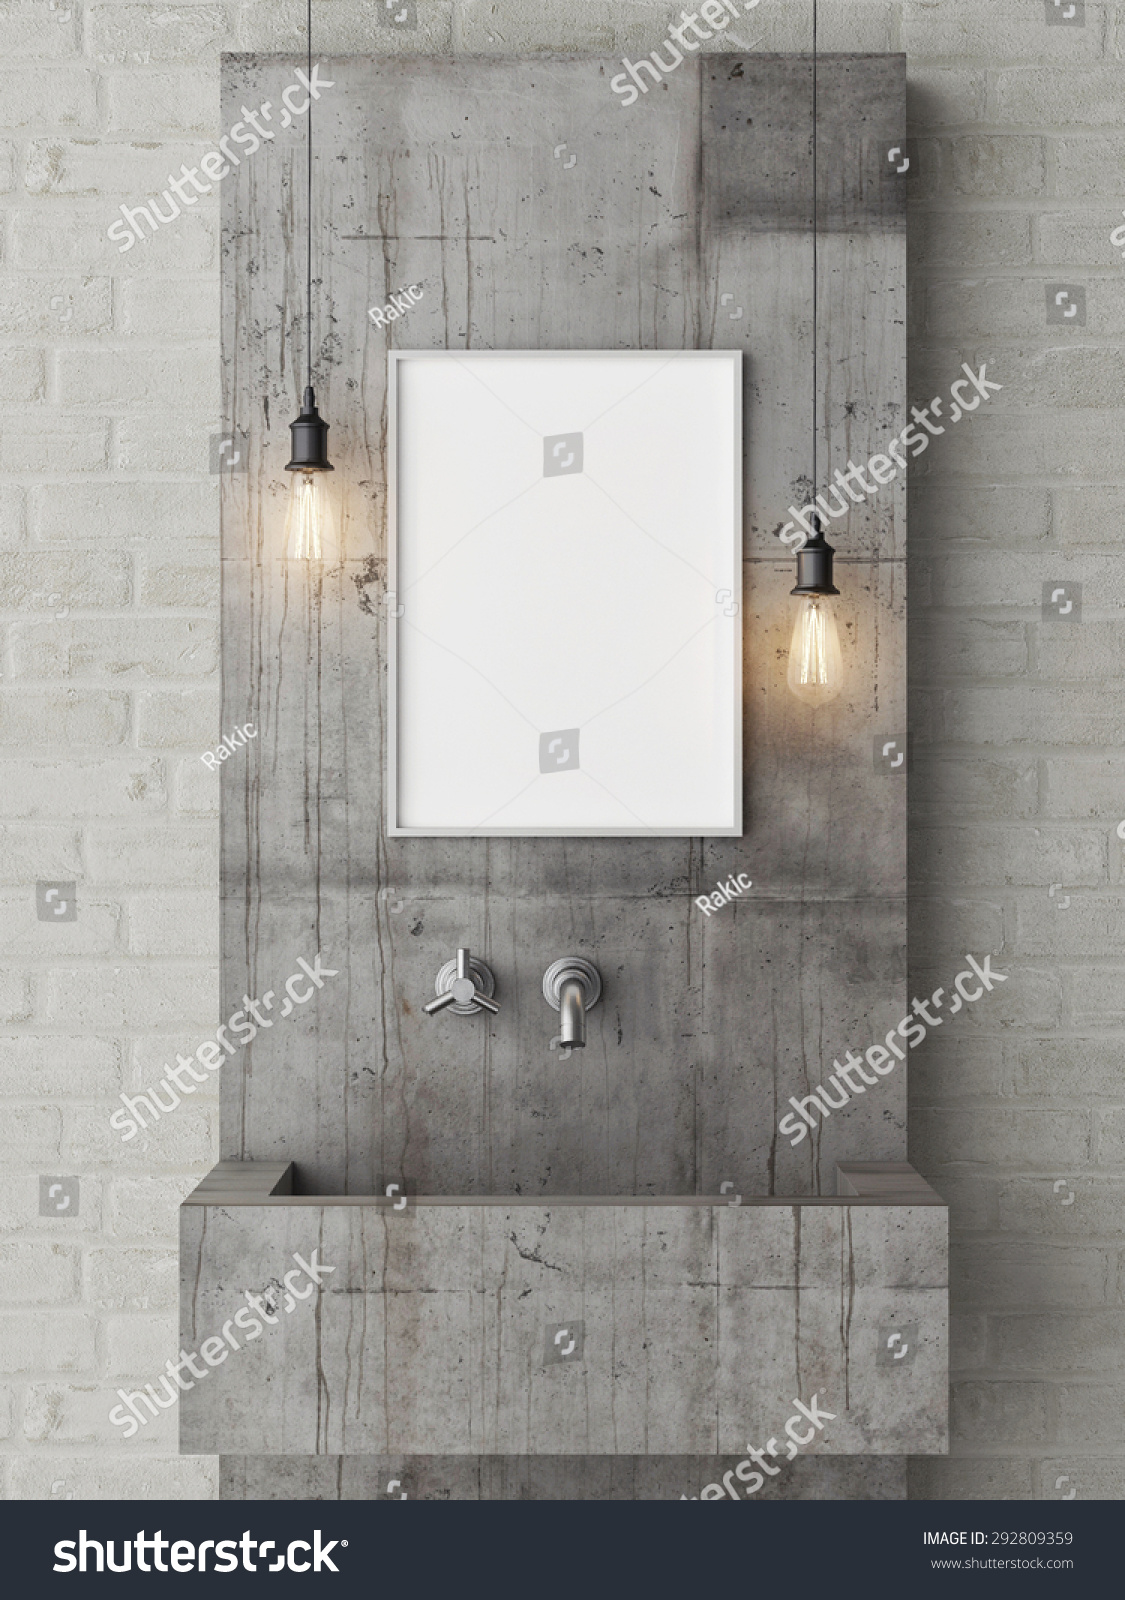 poster mock up loft bathroom 3d stock illustration 292809359